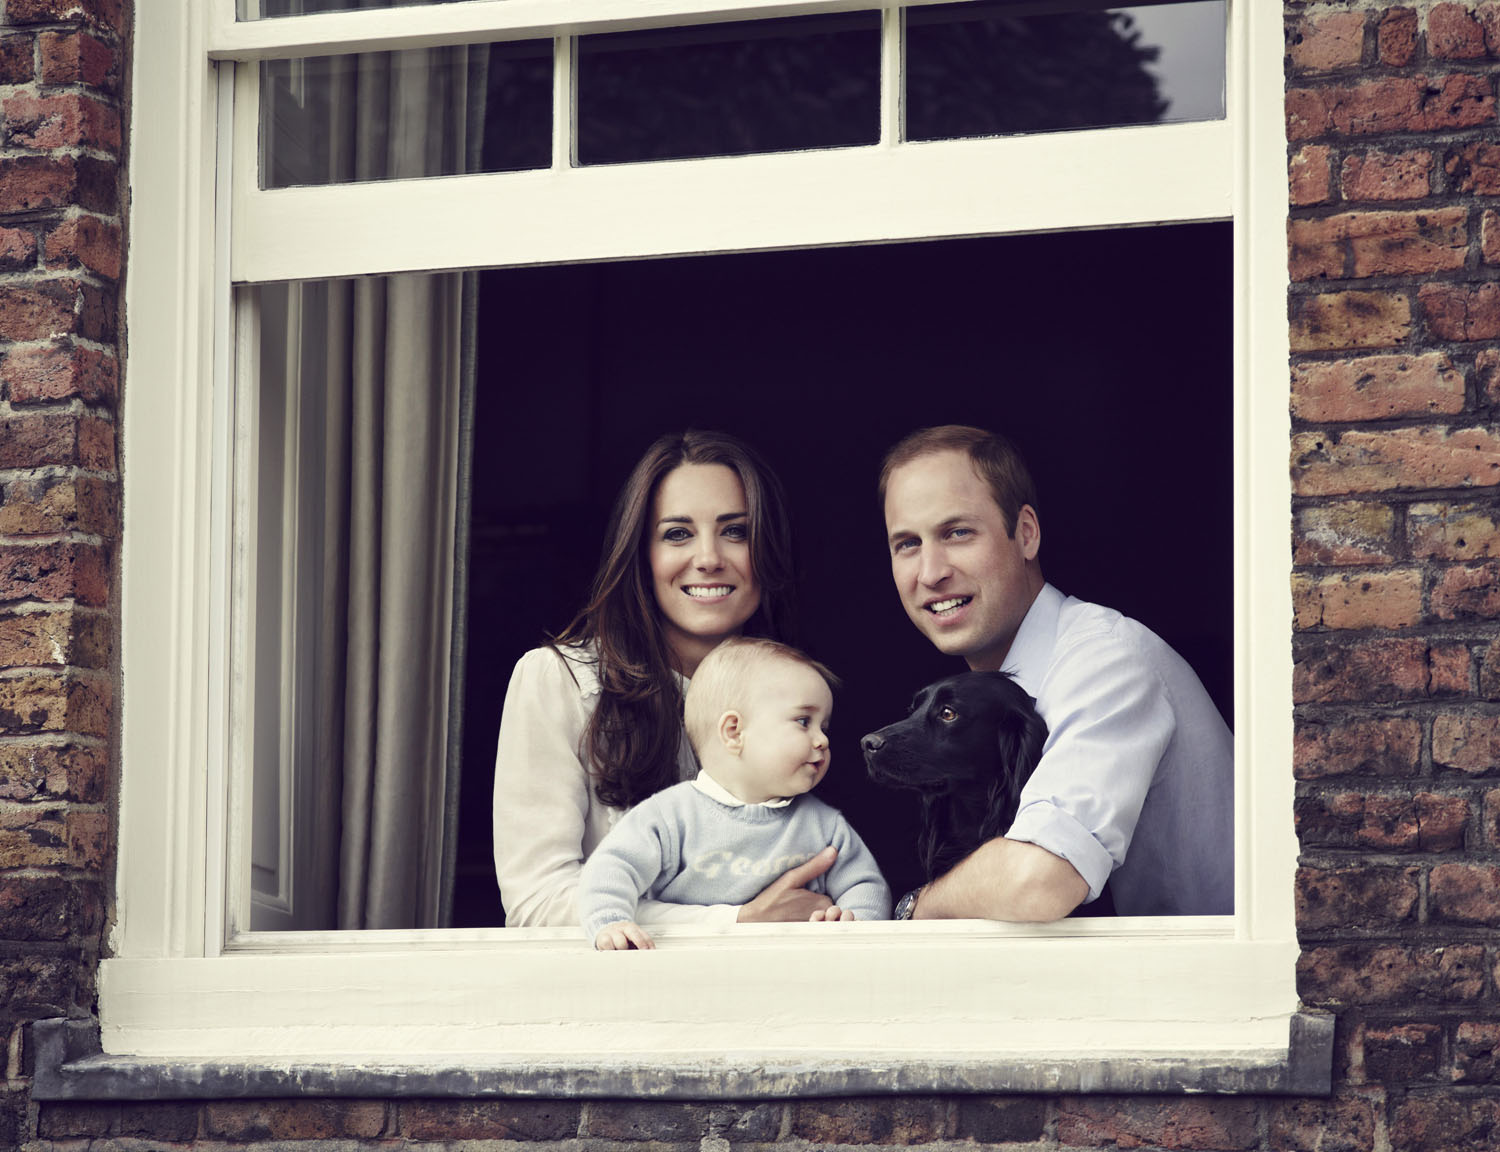 Prince William, Duke of Cambridge, Catherine, Duchess of Cambridge and Prince George of Cambridge pose for an official family portrait at Kensington Palace, ahead of their tour to Australia and New Zealand, with their pet dog Lupo on March 18, 2014 in London.